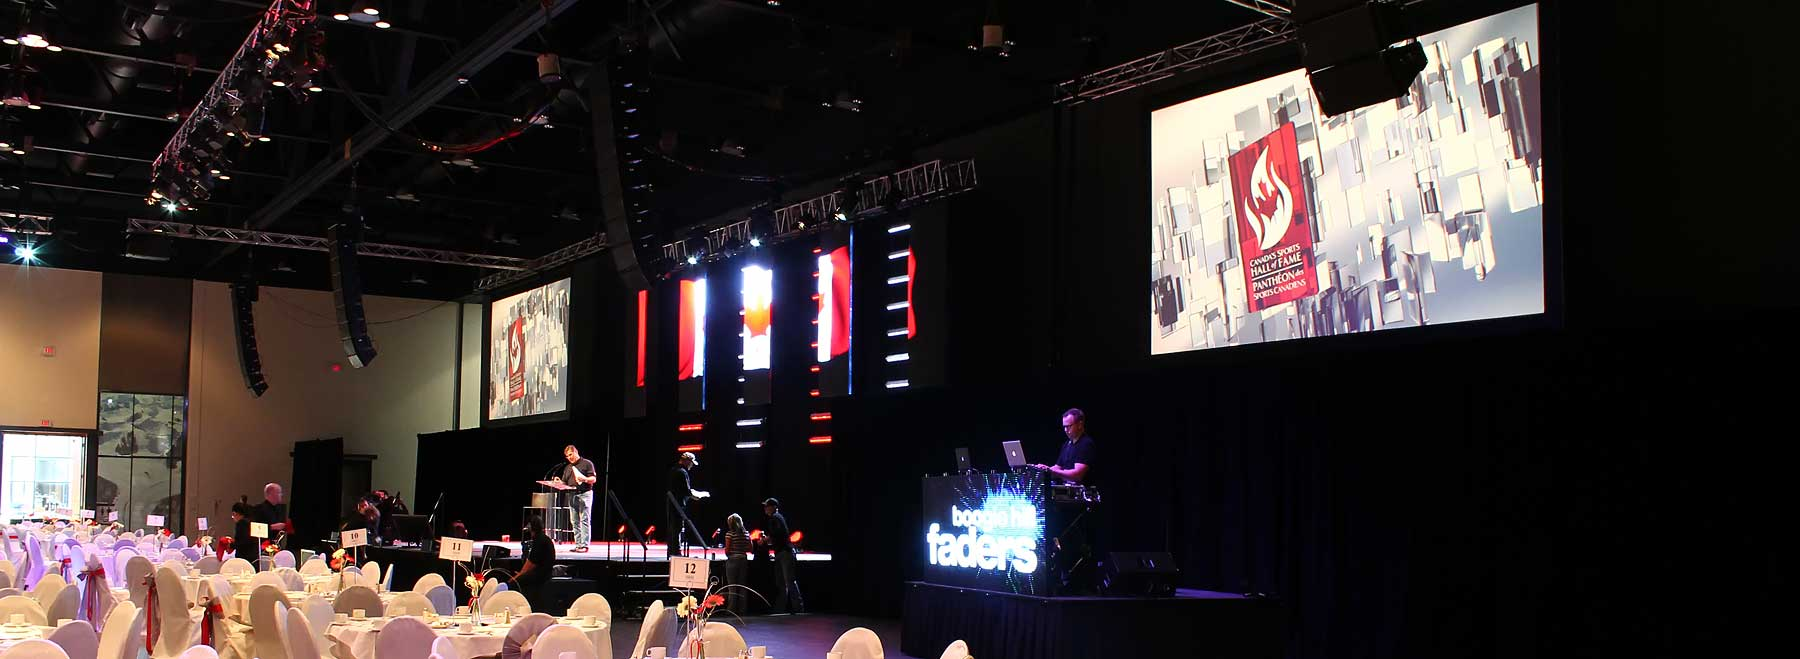 Canada's Sports Hall of Fame event, Sound, Video and Lighting by Allstar Show Industries